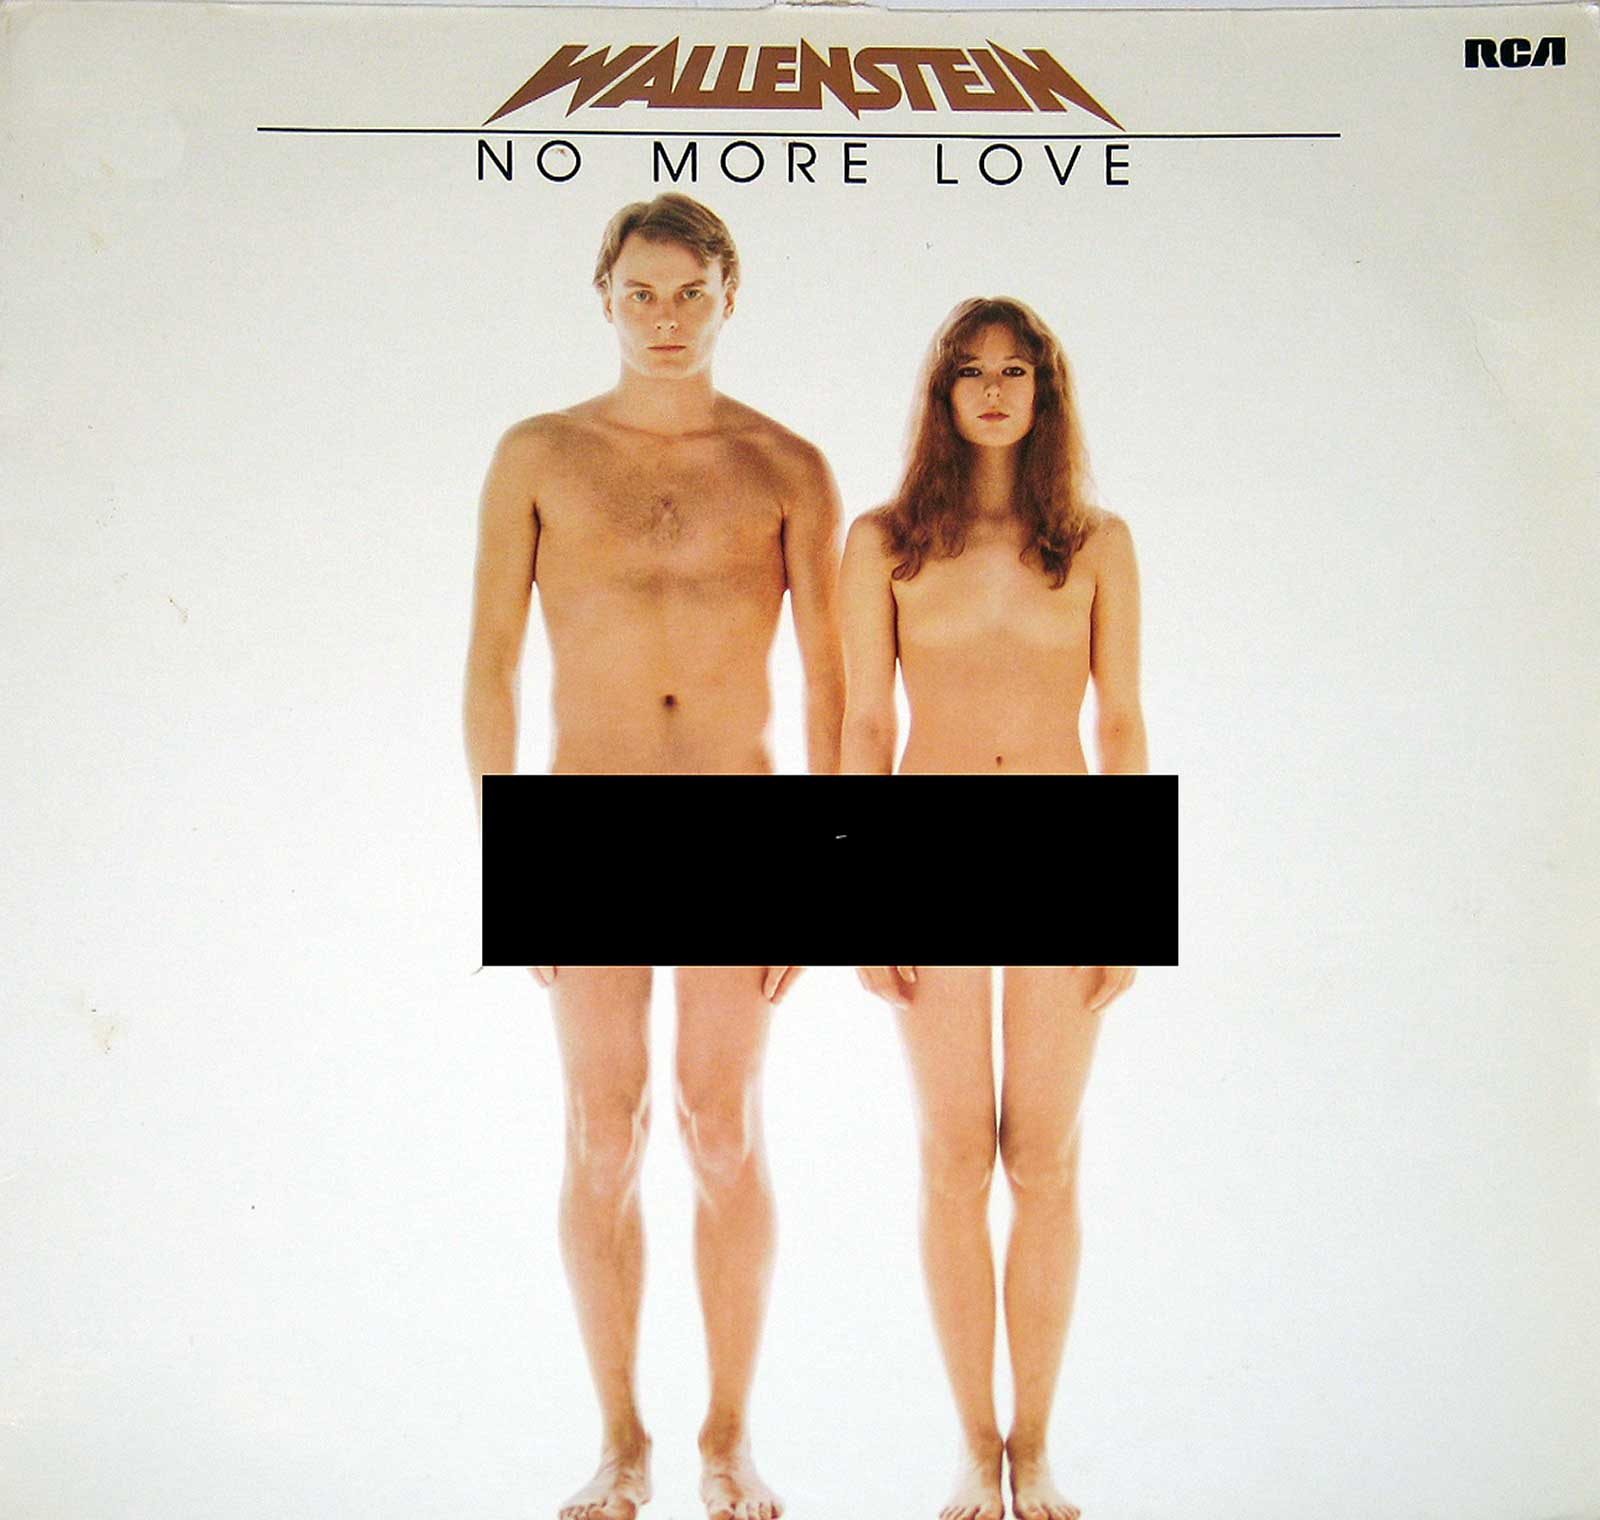 Album Front Cover of WALLENSTEIN NO MORE LOVE NUDITY